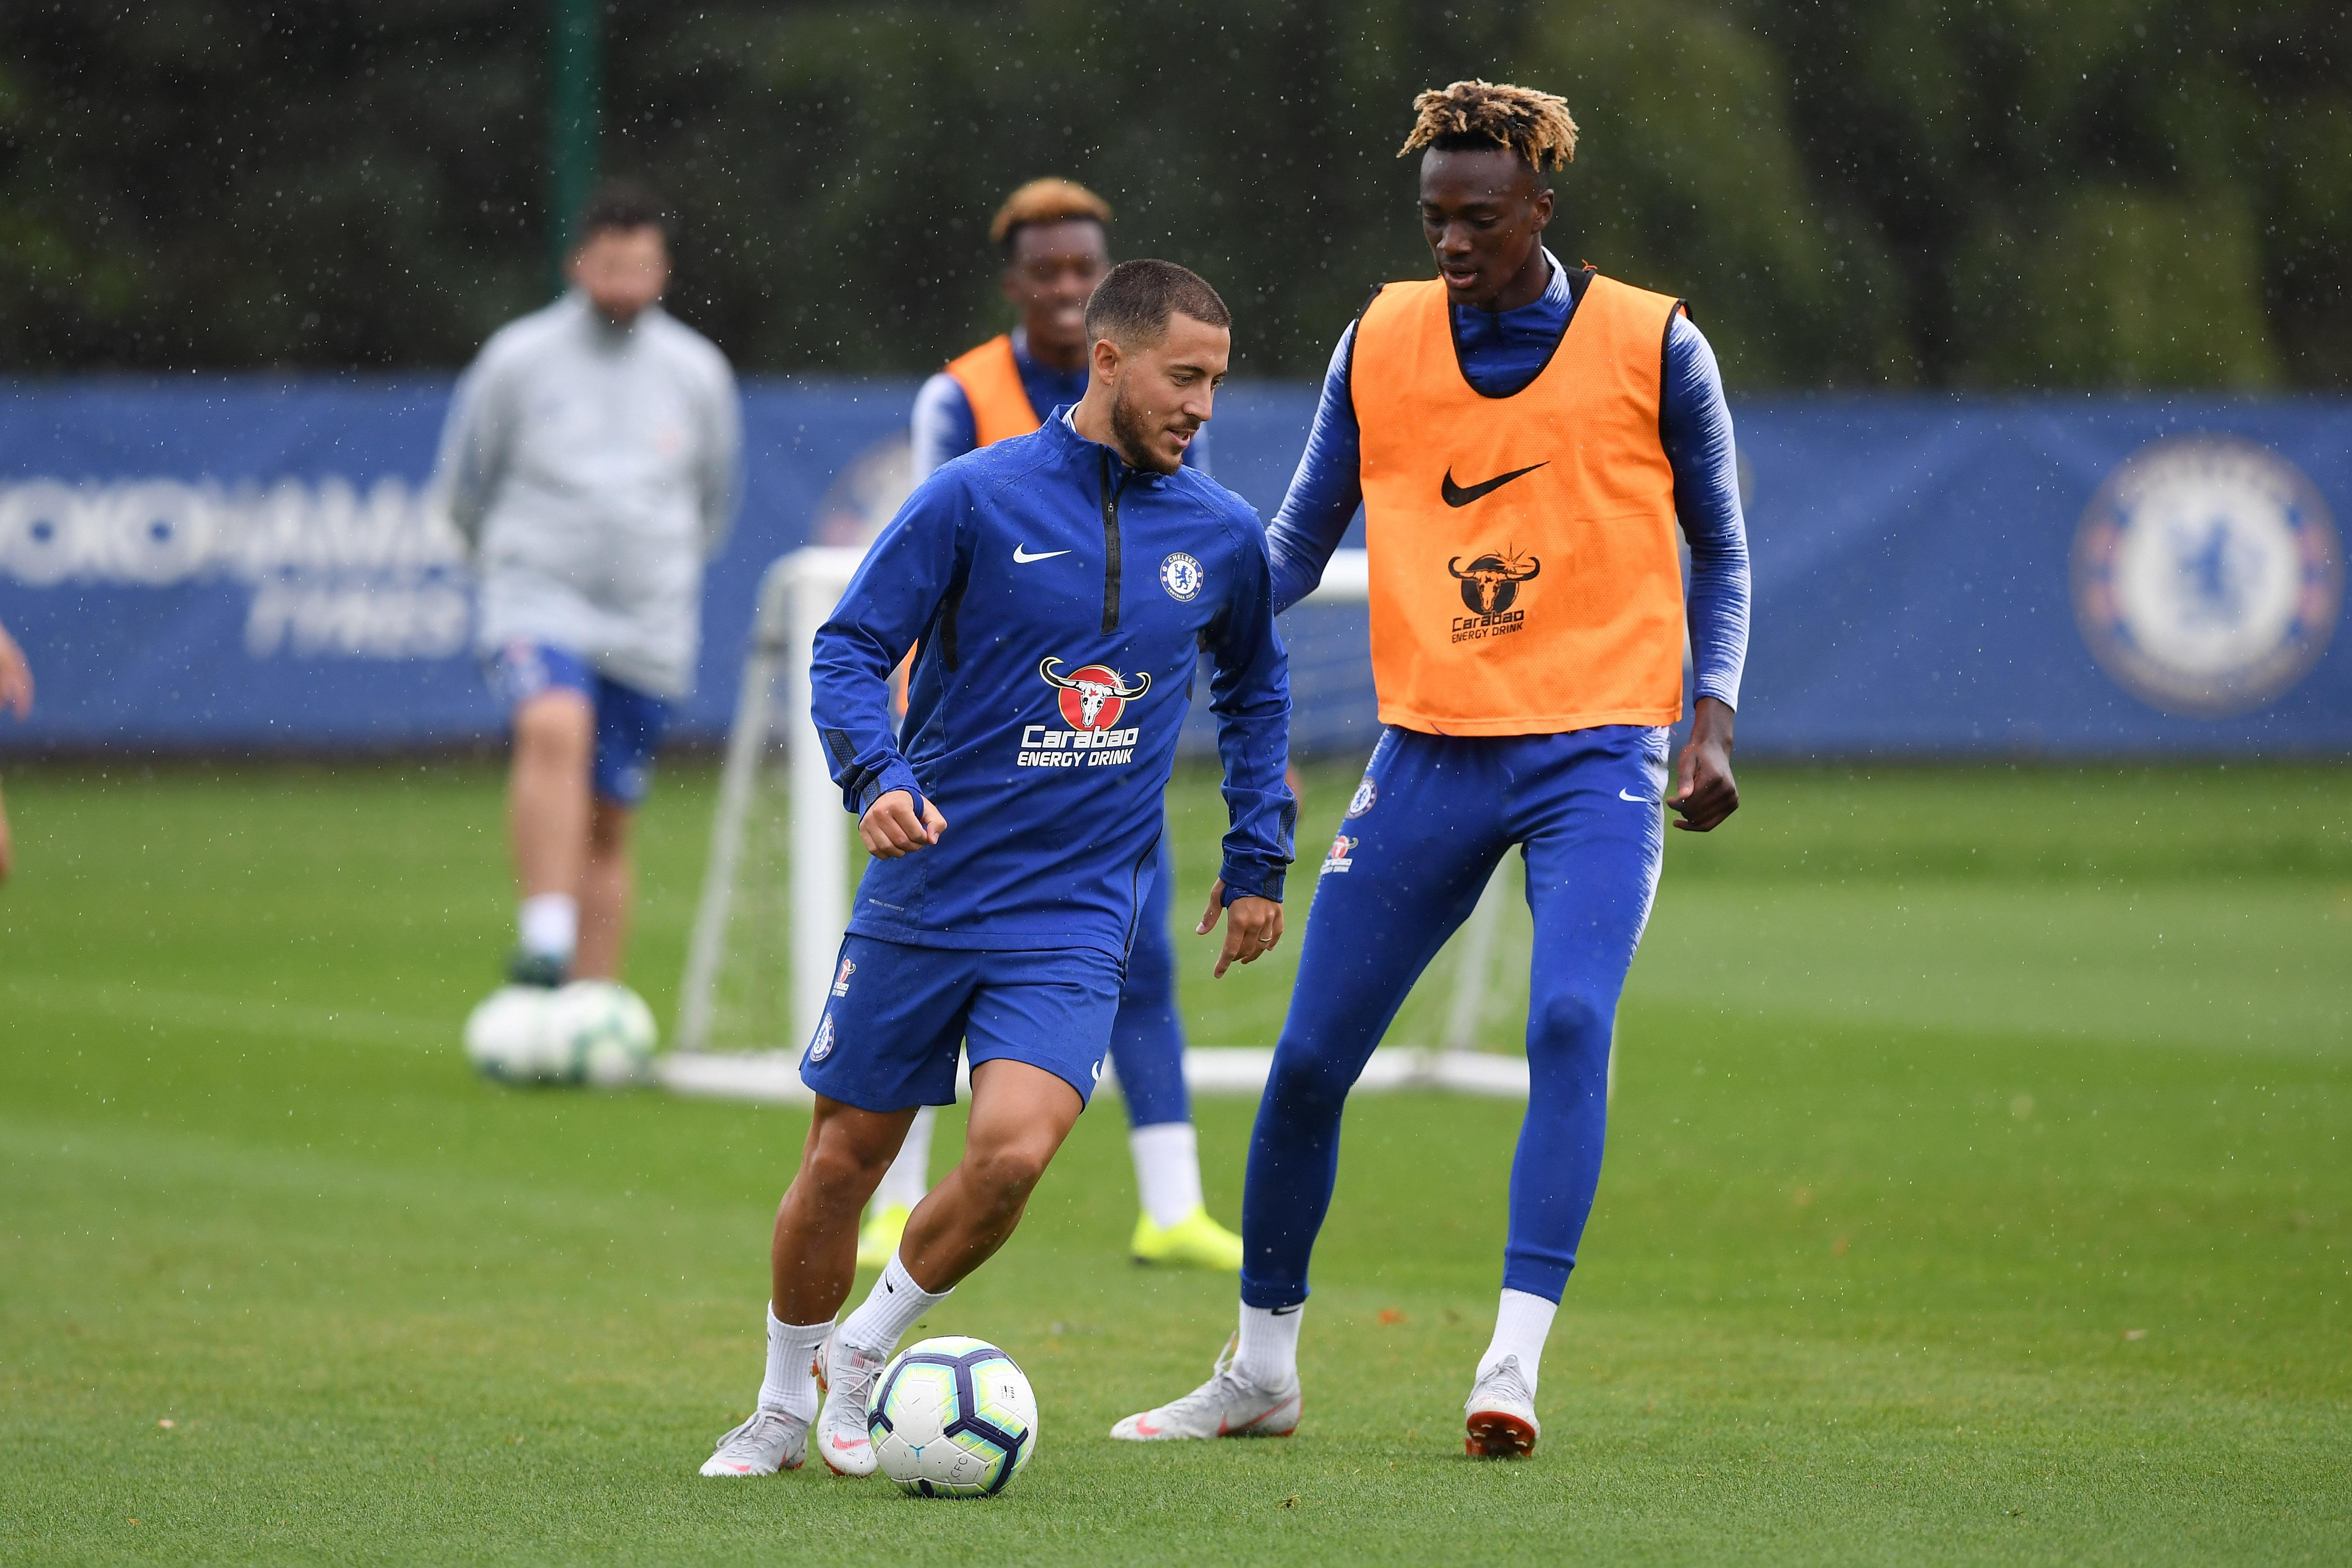 Eden Hazard remains at Chelsea for now, but Real Madrid can still move for him until the end of August